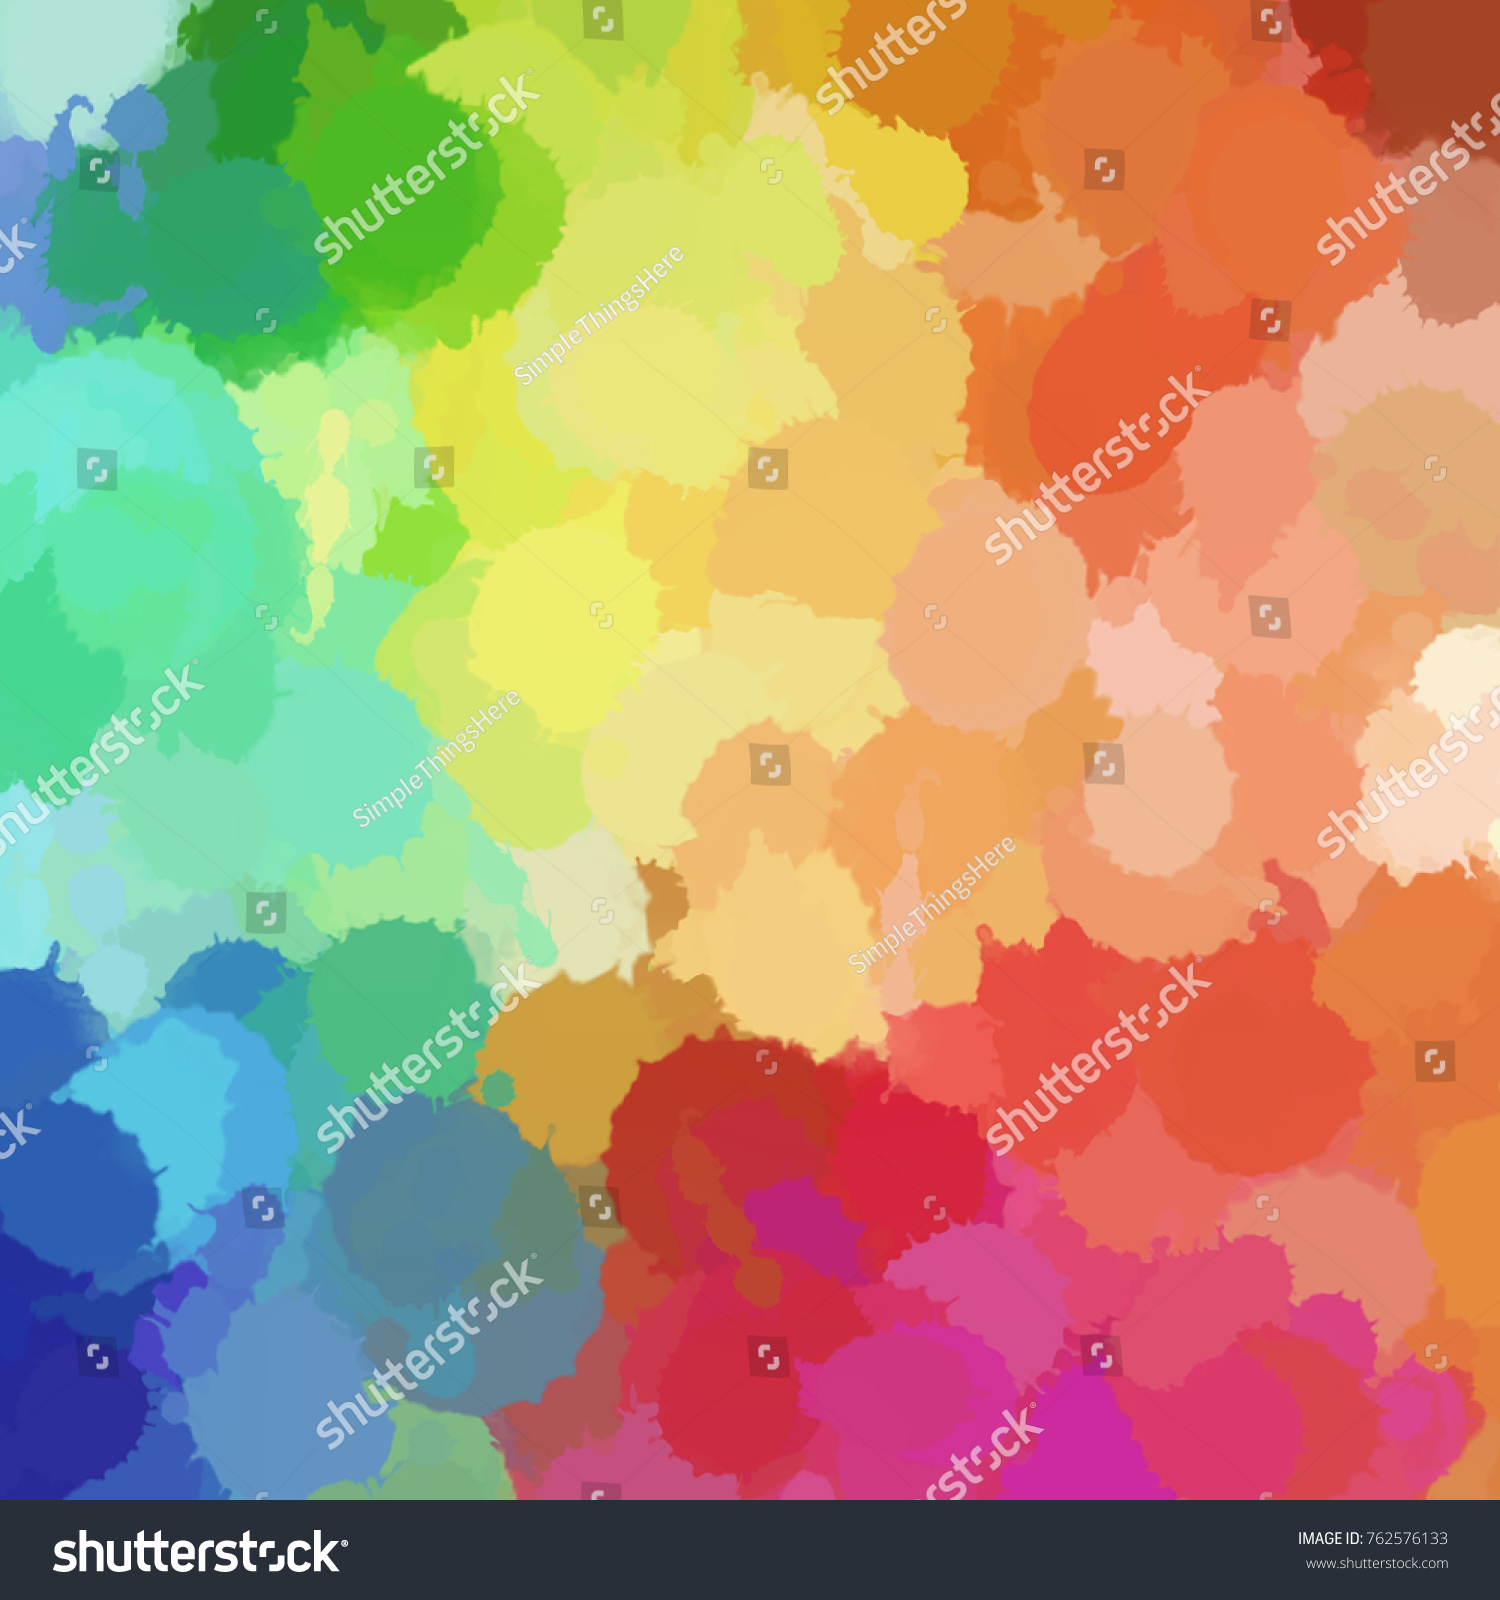 Design Smooth Abstract Texture Beautiful Color Stock Illustration